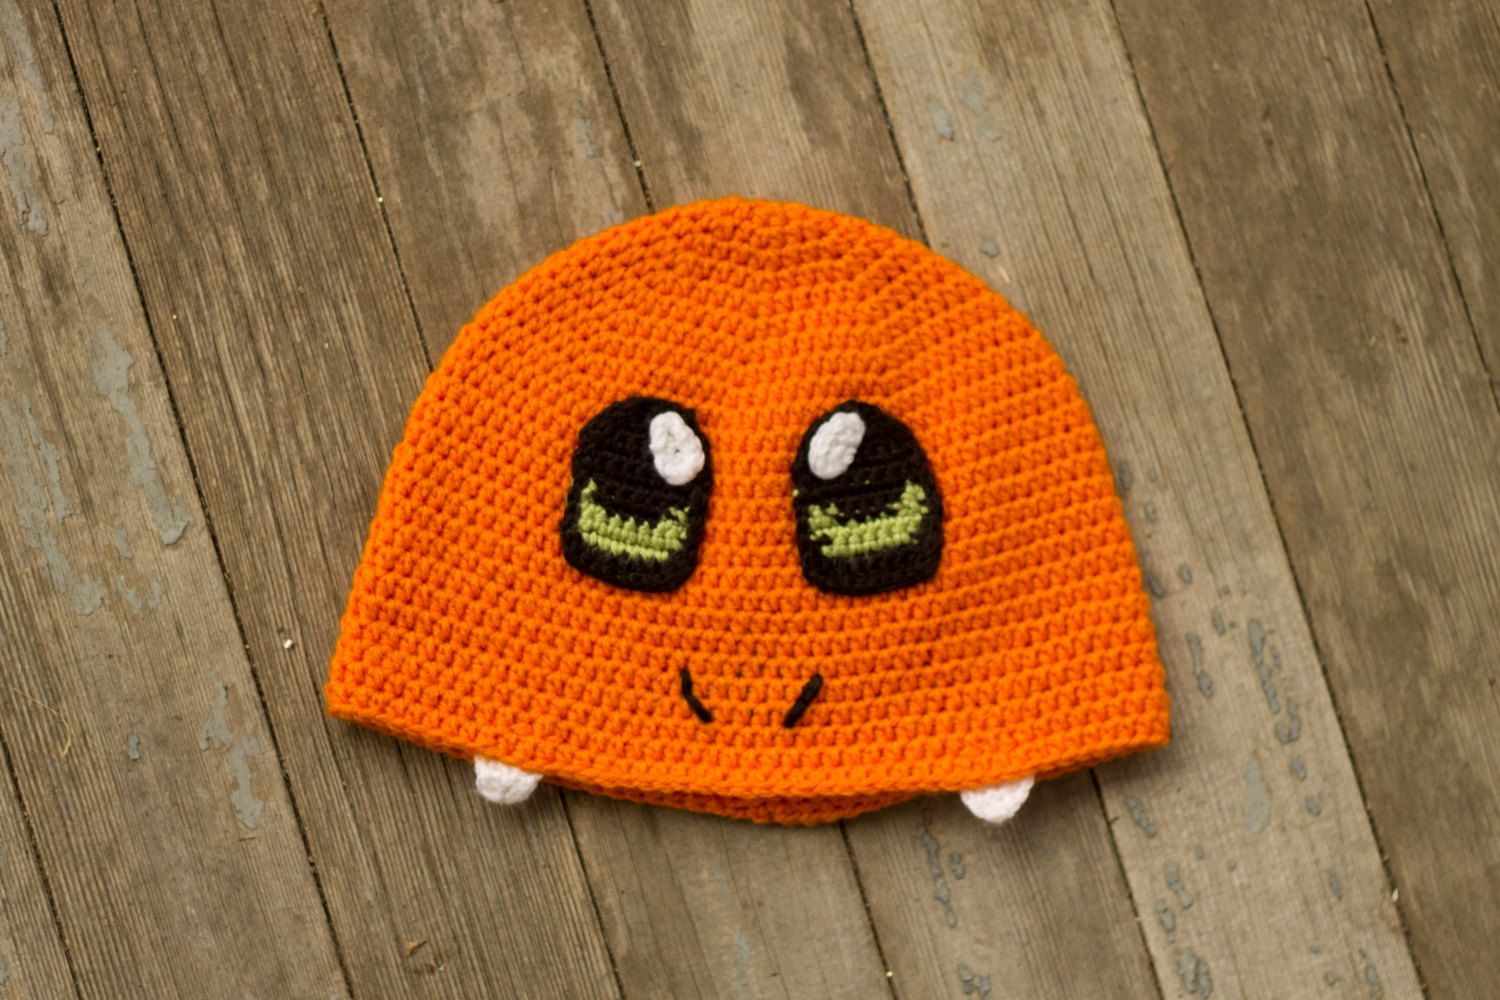 Geek Wear Gaming Fashion Crochet Winter Hat Charmander Inspired